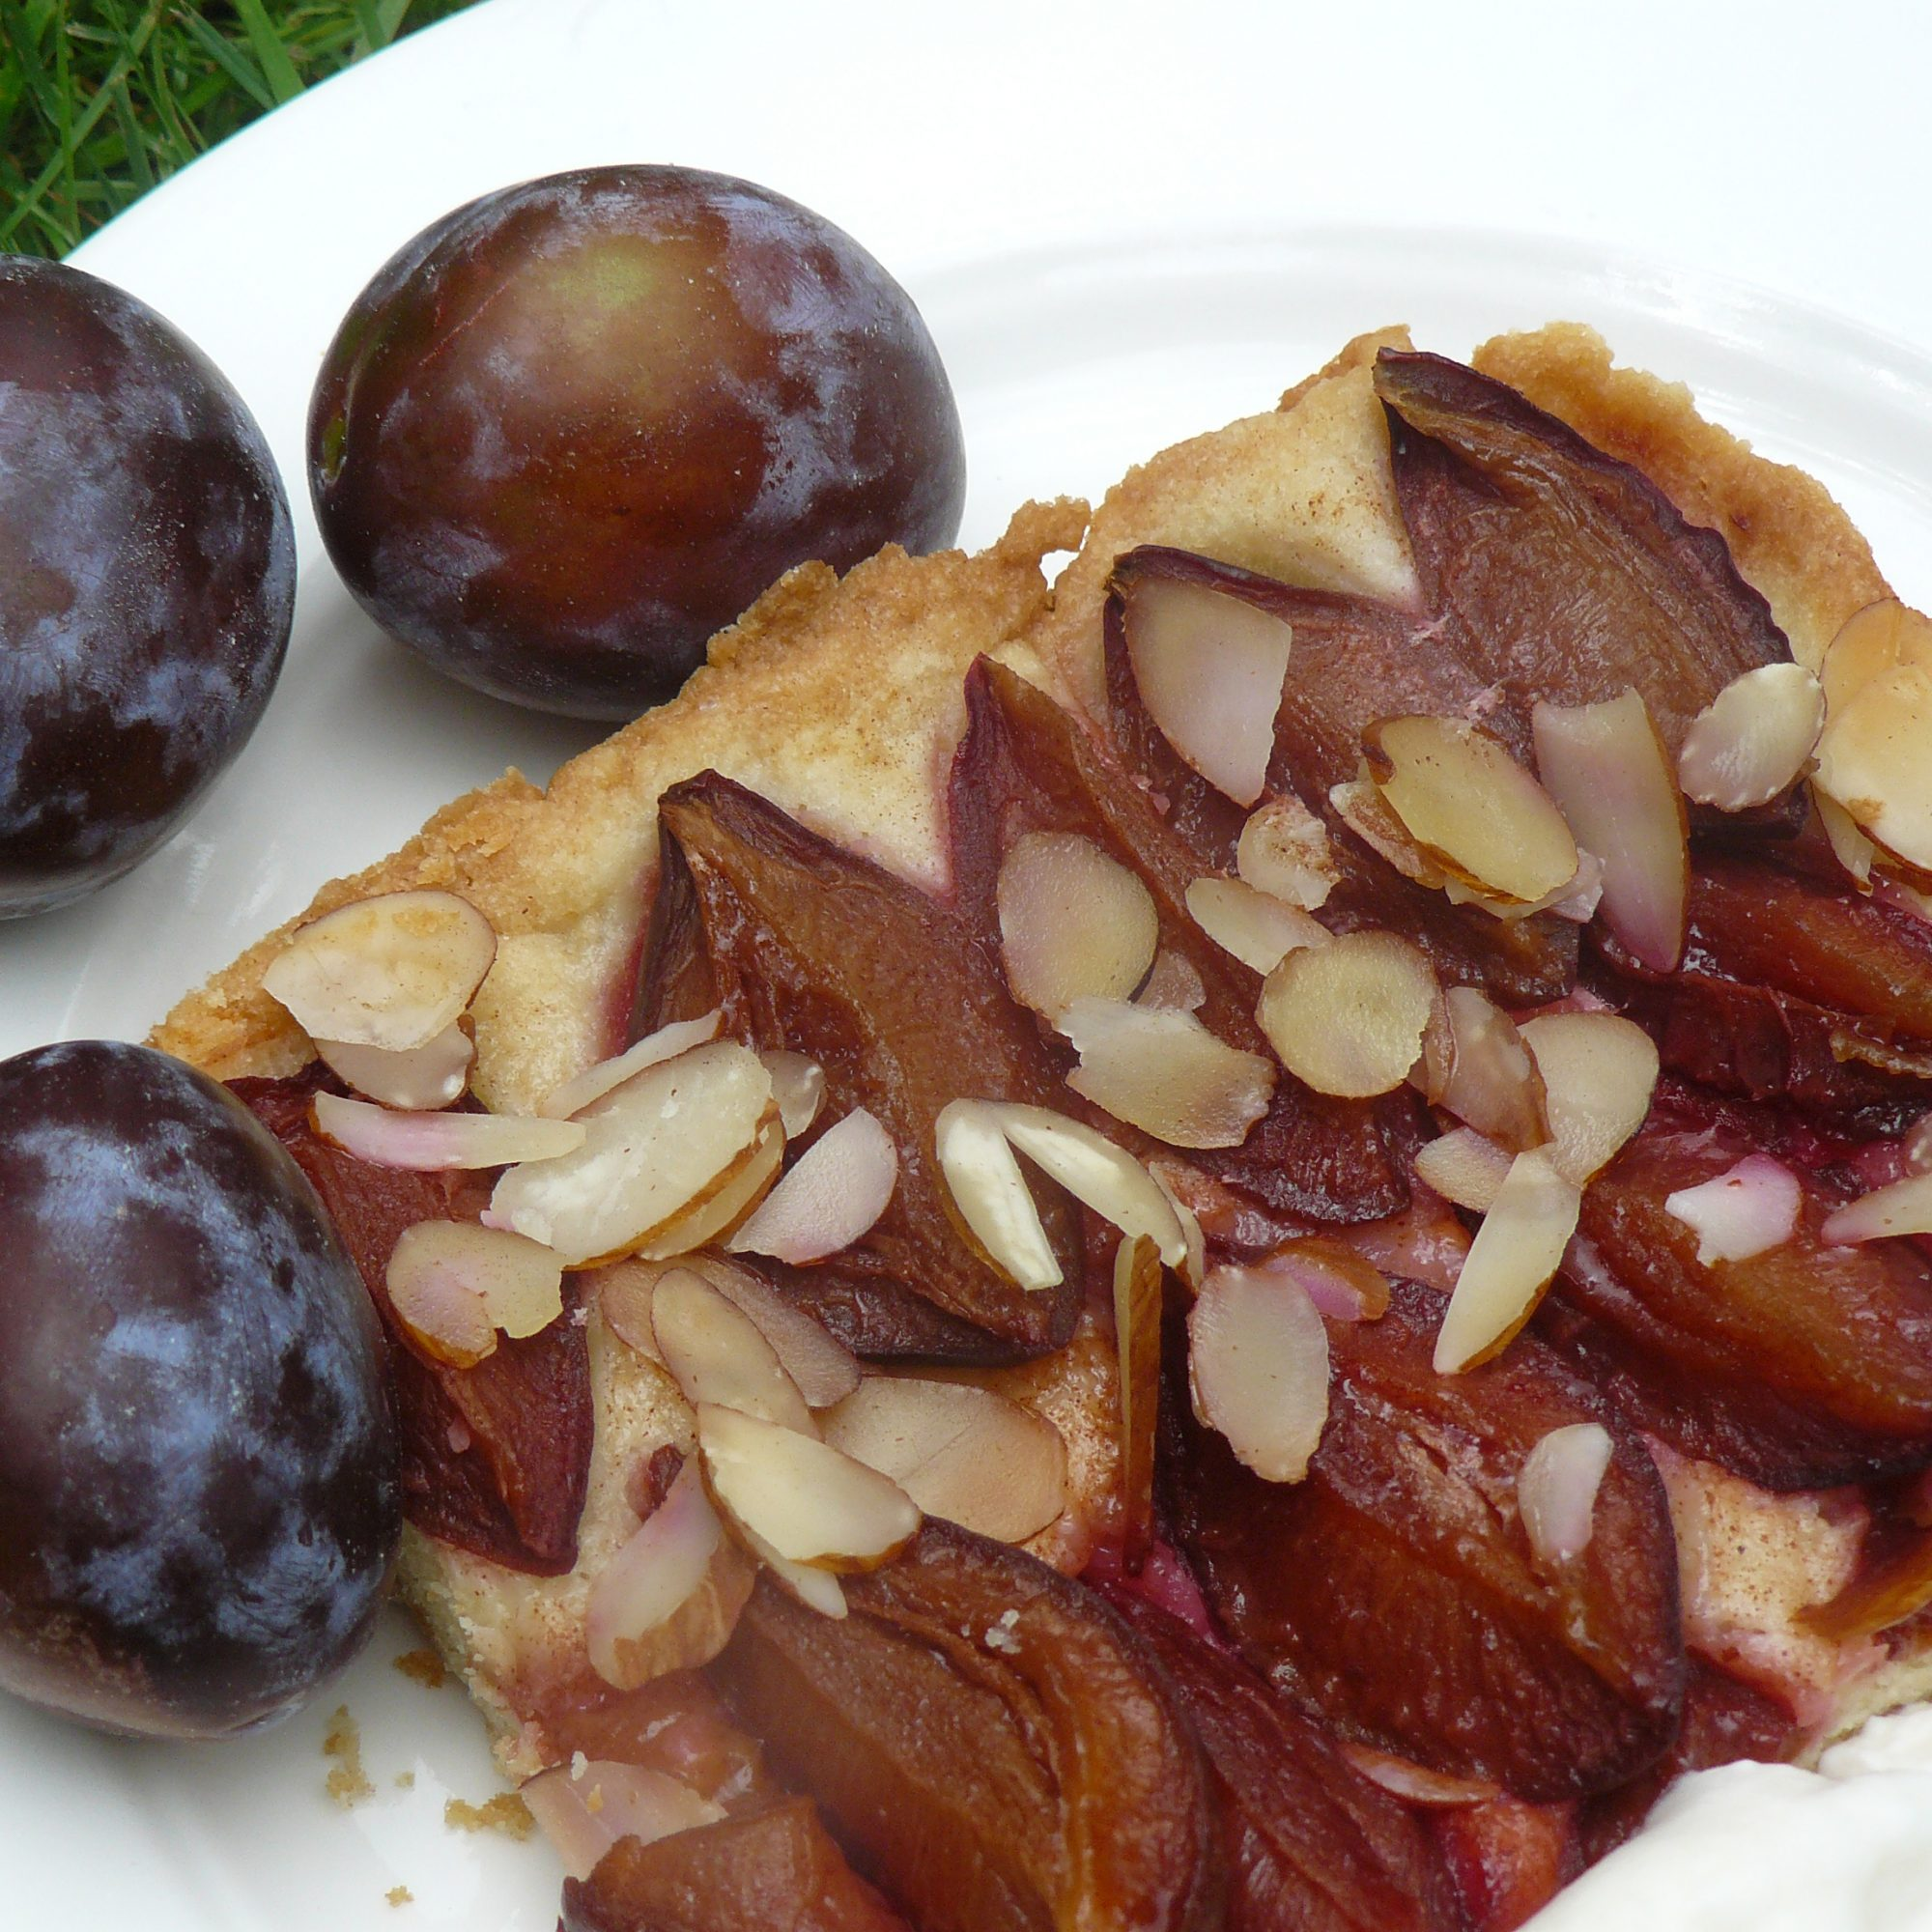 Zwetschgendatschi on a white plate with fresh plums